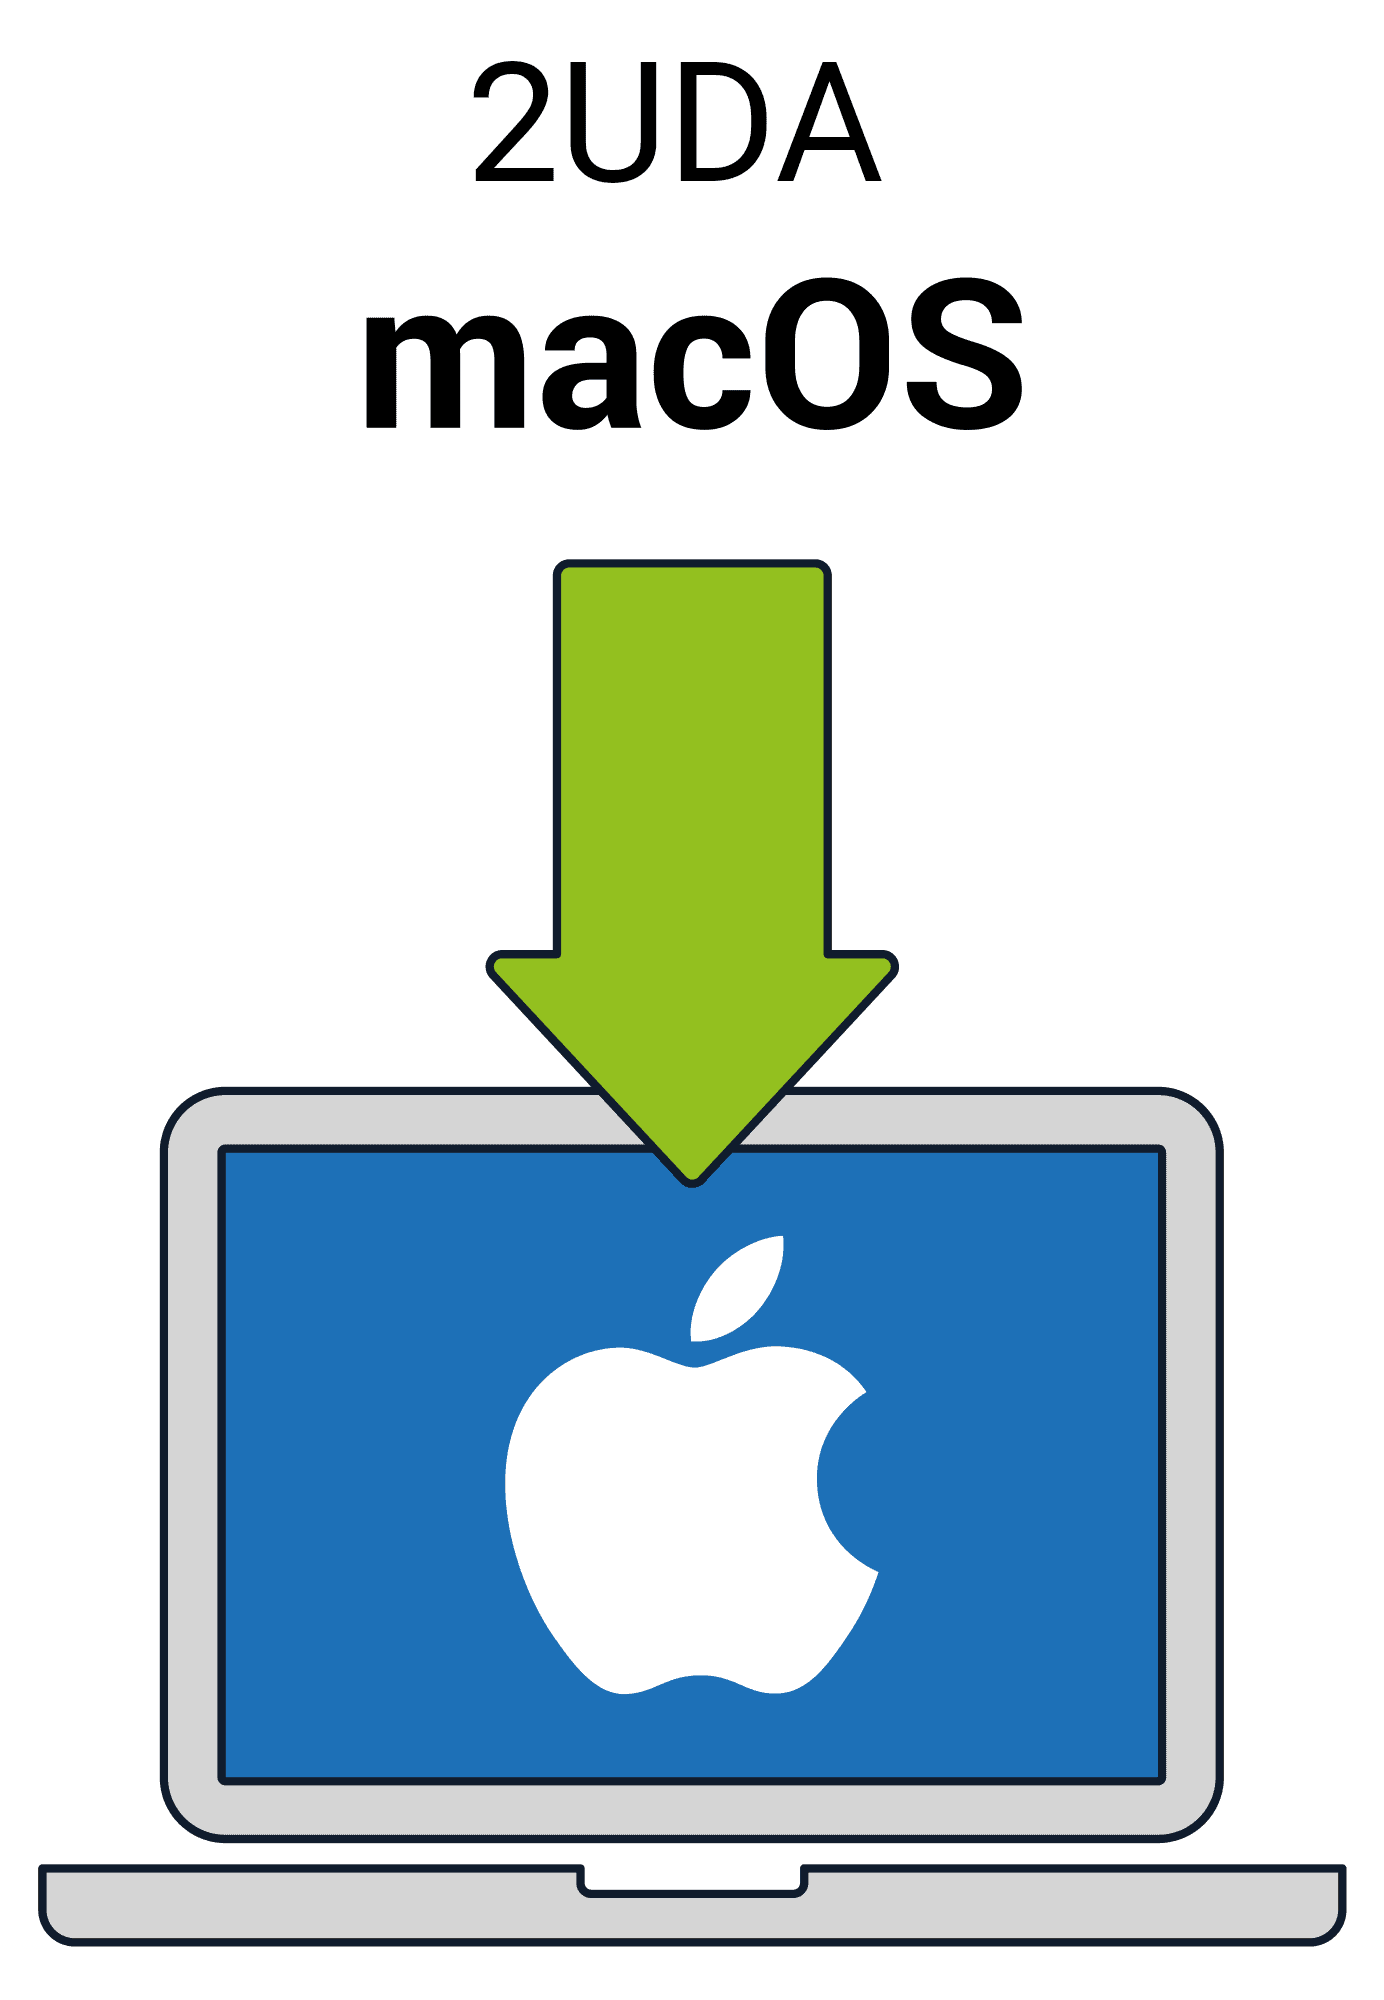 The 2UDA installer is available to download for MacOS and supports PG 9.5.23 and above.